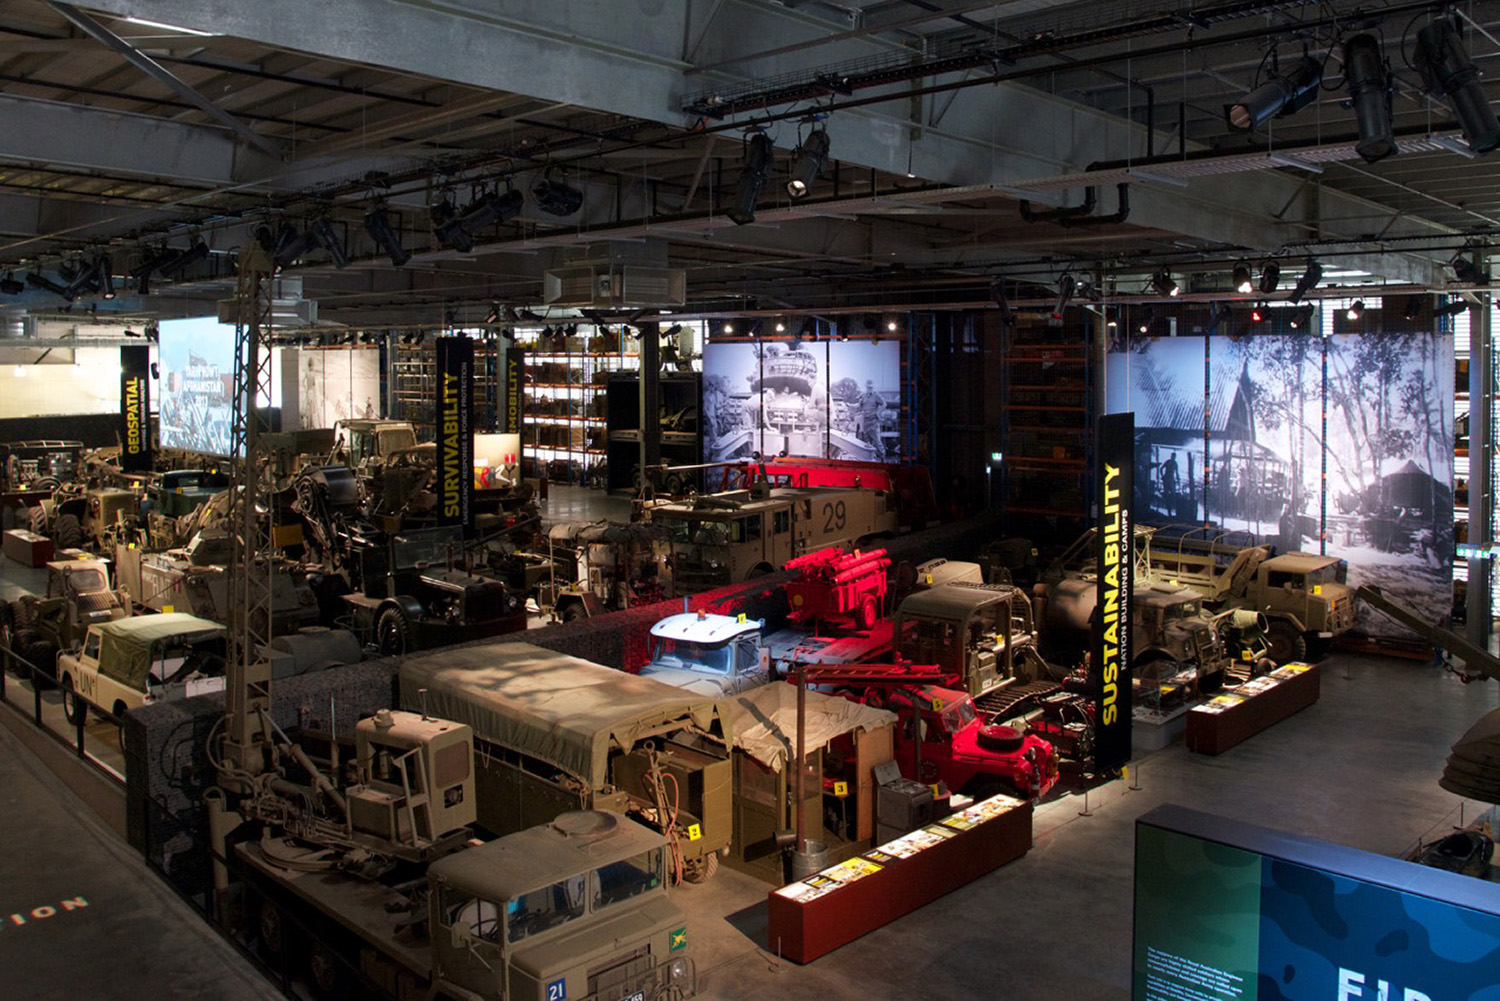 The first stage began with extensive analysis of the museum collection and associated history, in order to form a foundation for the thematic strategy and design concept. The second stage involved spatial planning, interpretive content development and creating all exhibition components and fixtures.